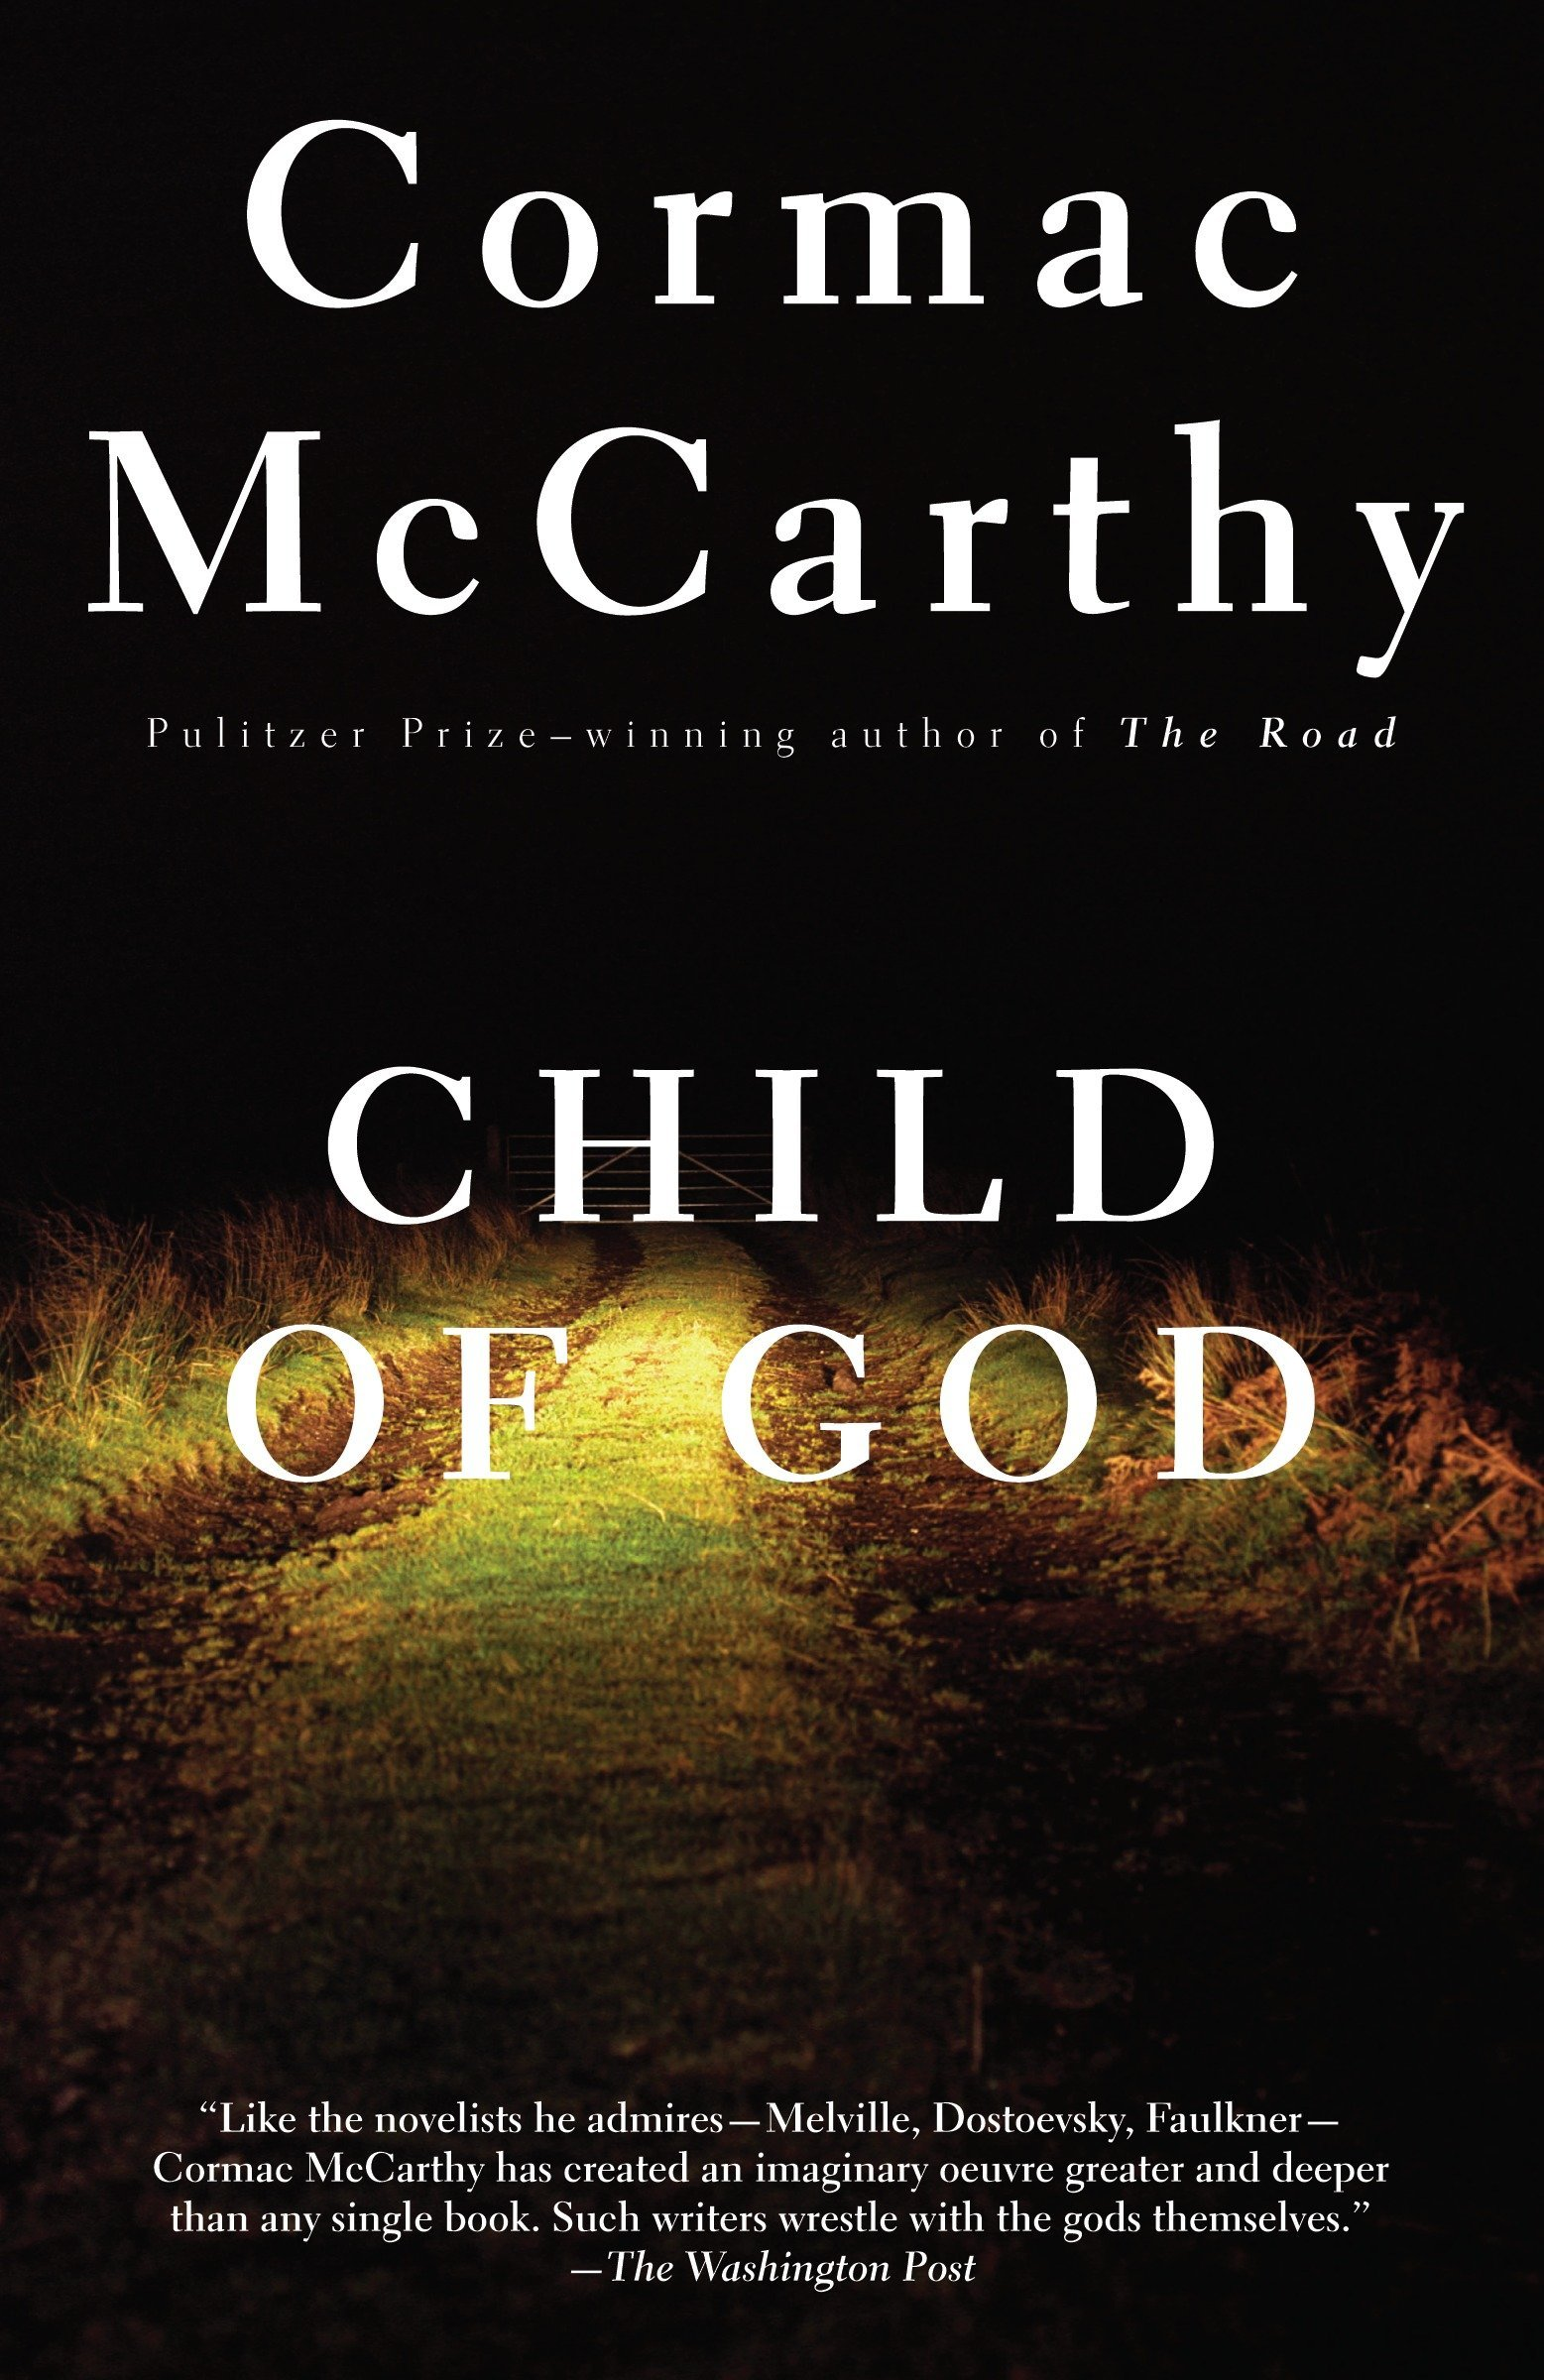 Child of God: Cormac McCarthy: 9780679728740: Amazon.com: Books